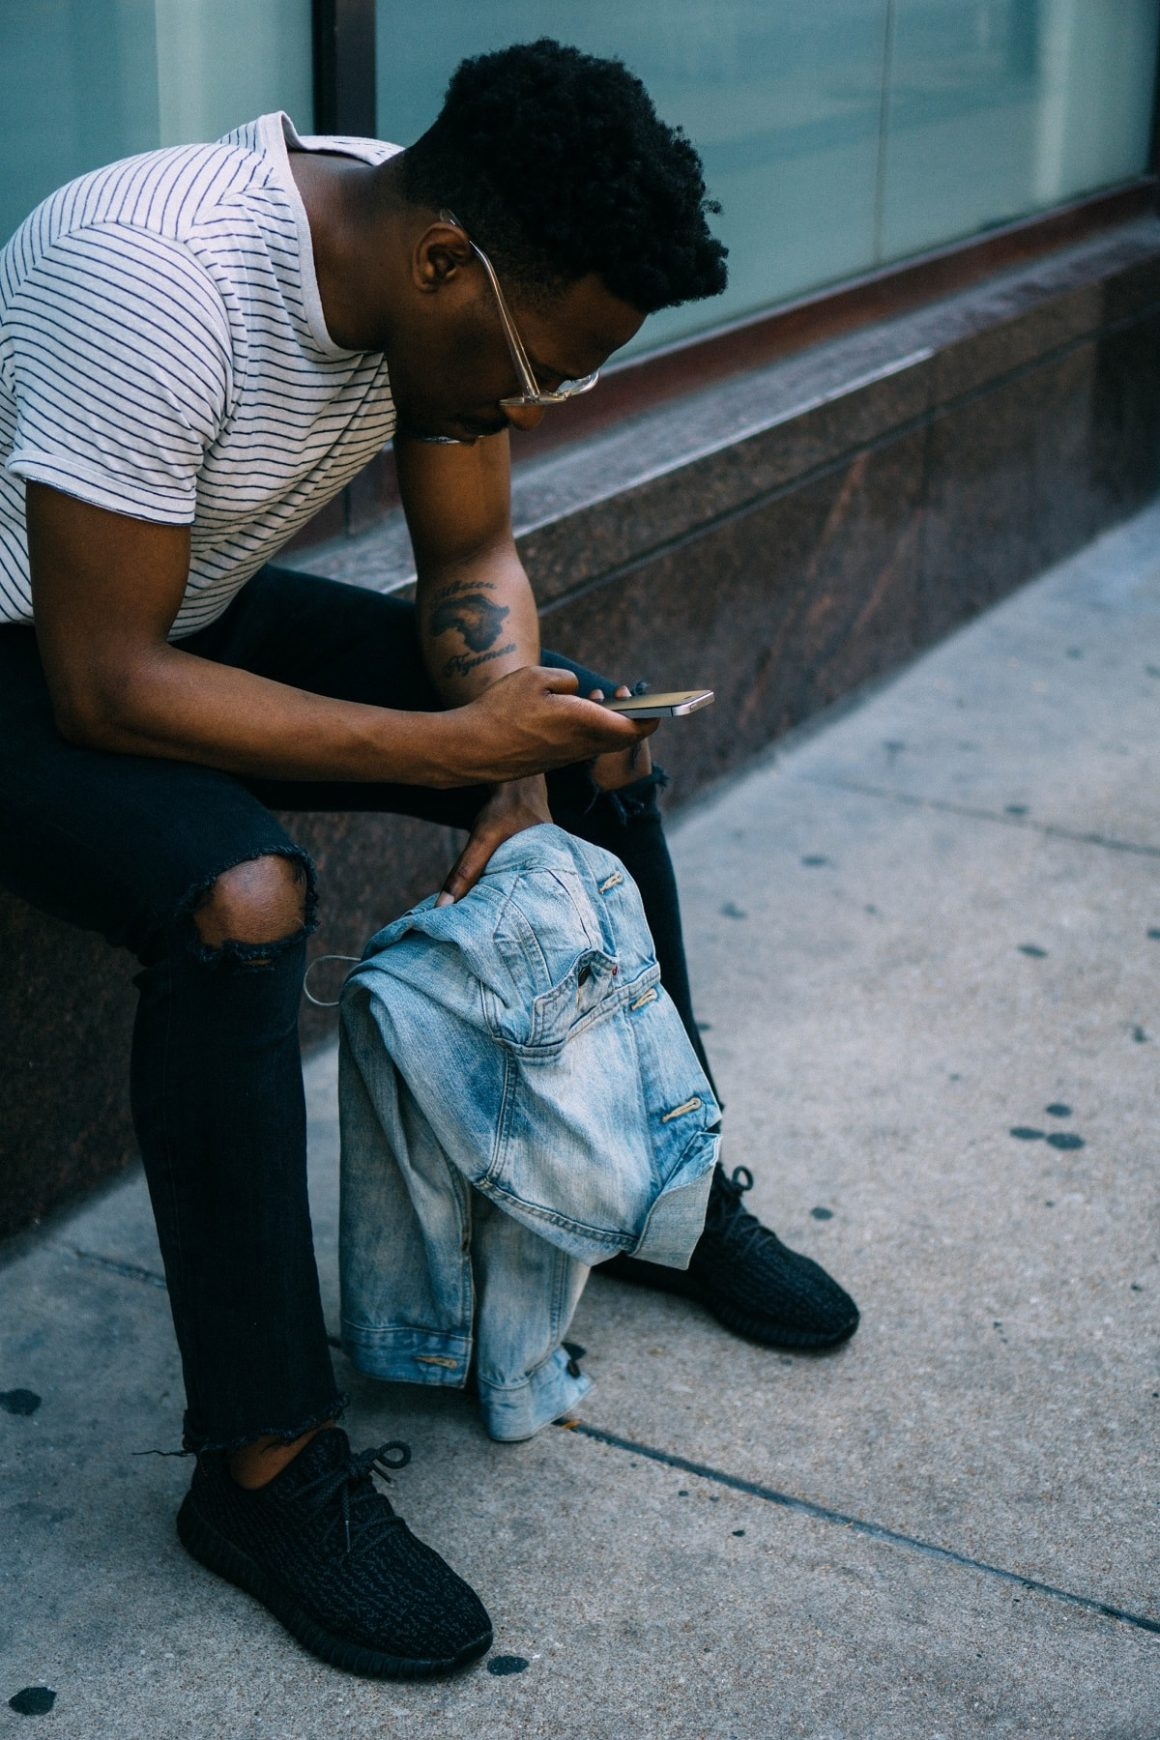 man sitting on the side of a building looking at his phone